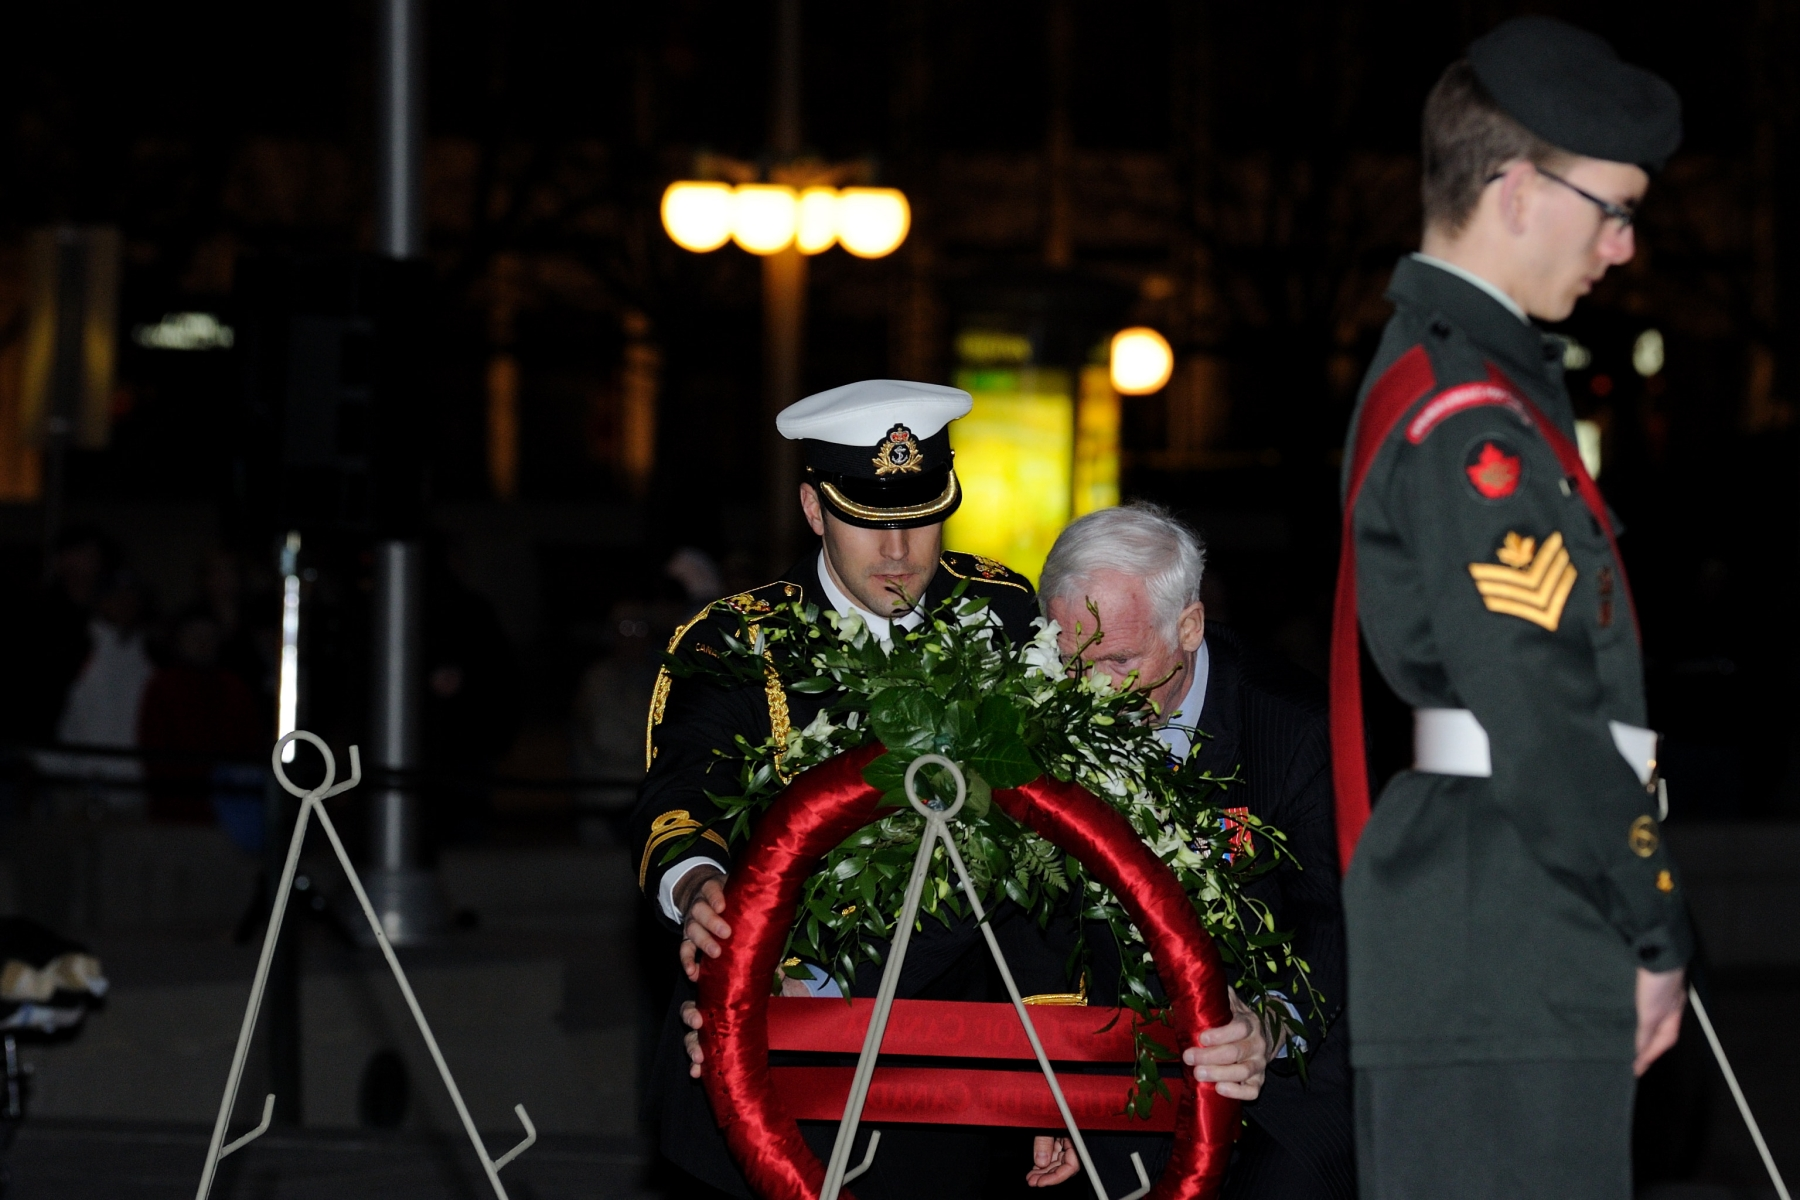 The Governor General participated in the laying of wreaths before the Tomb of the Unknown Soldier during a special candlelight ceremony on the eve of Vimy Ridge Day, to pay tribute to the 94th anniversary of the Battle of Vimy Ridge.